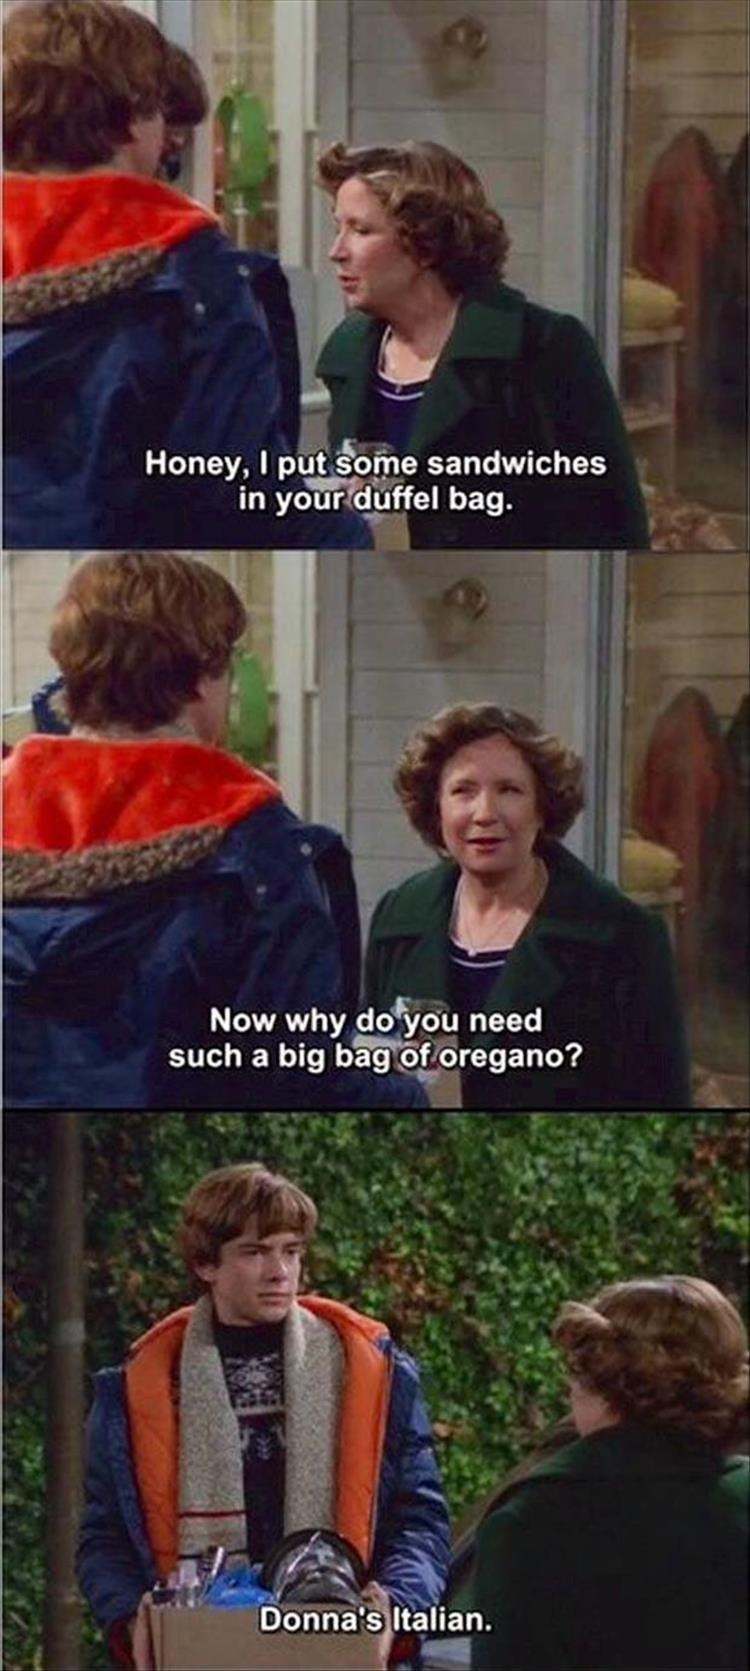 Outerwear - Honey, I put some sandwiches in your duffel bag. Now why do you need such a big bag of oregano? Donna's Italian.